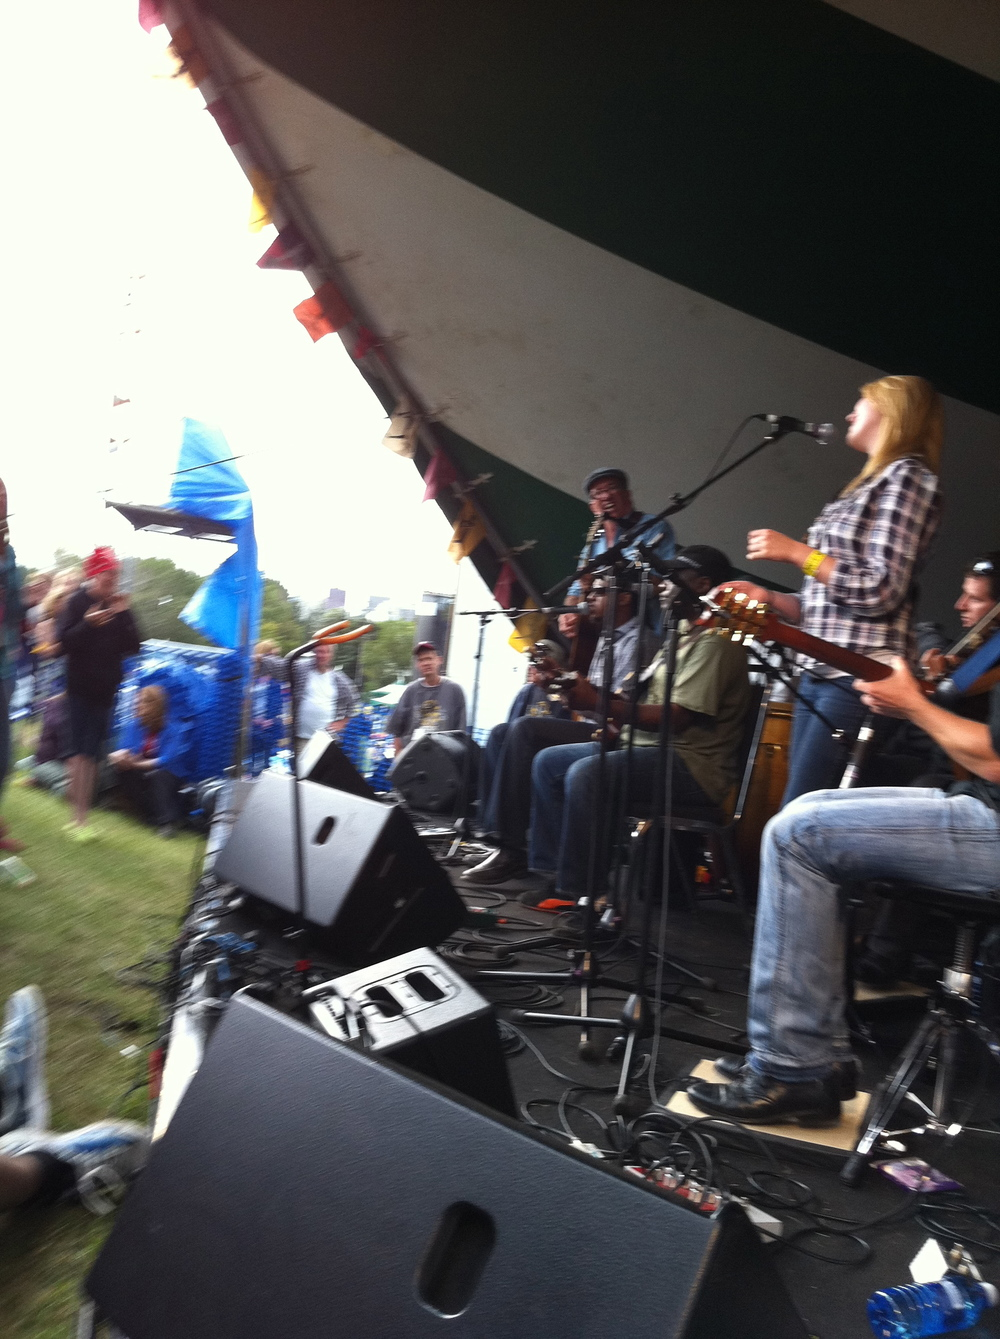 Pulled on stage at Edmontons Folk Festival 2012 by The Mighty Popo